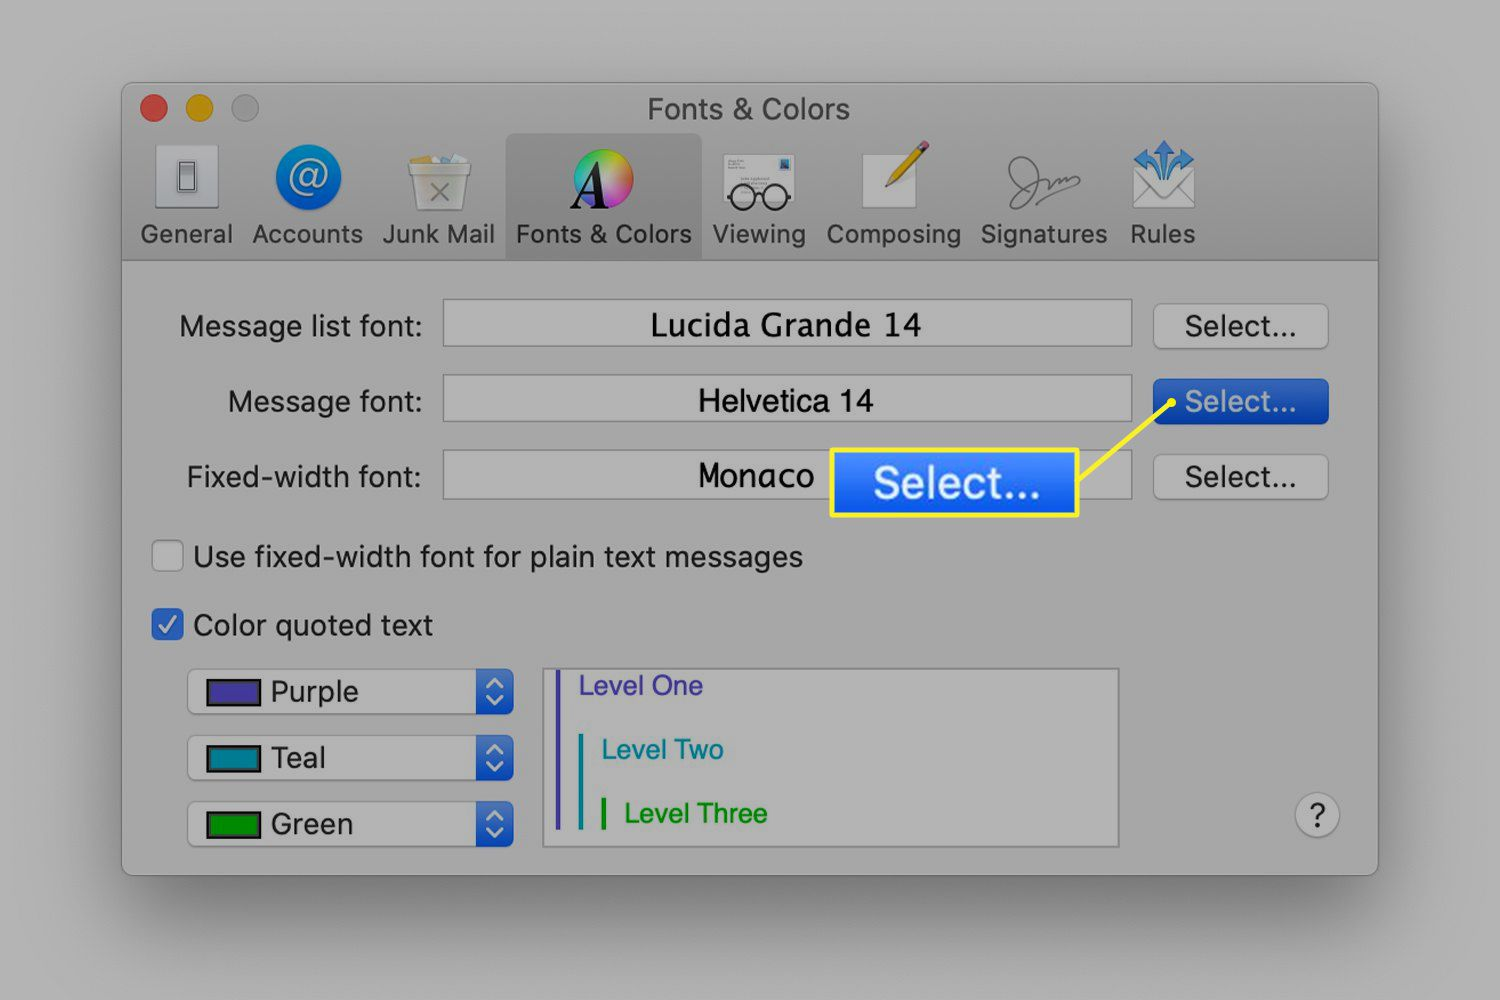 Fonts & Colors preferences screen for Mac Mail